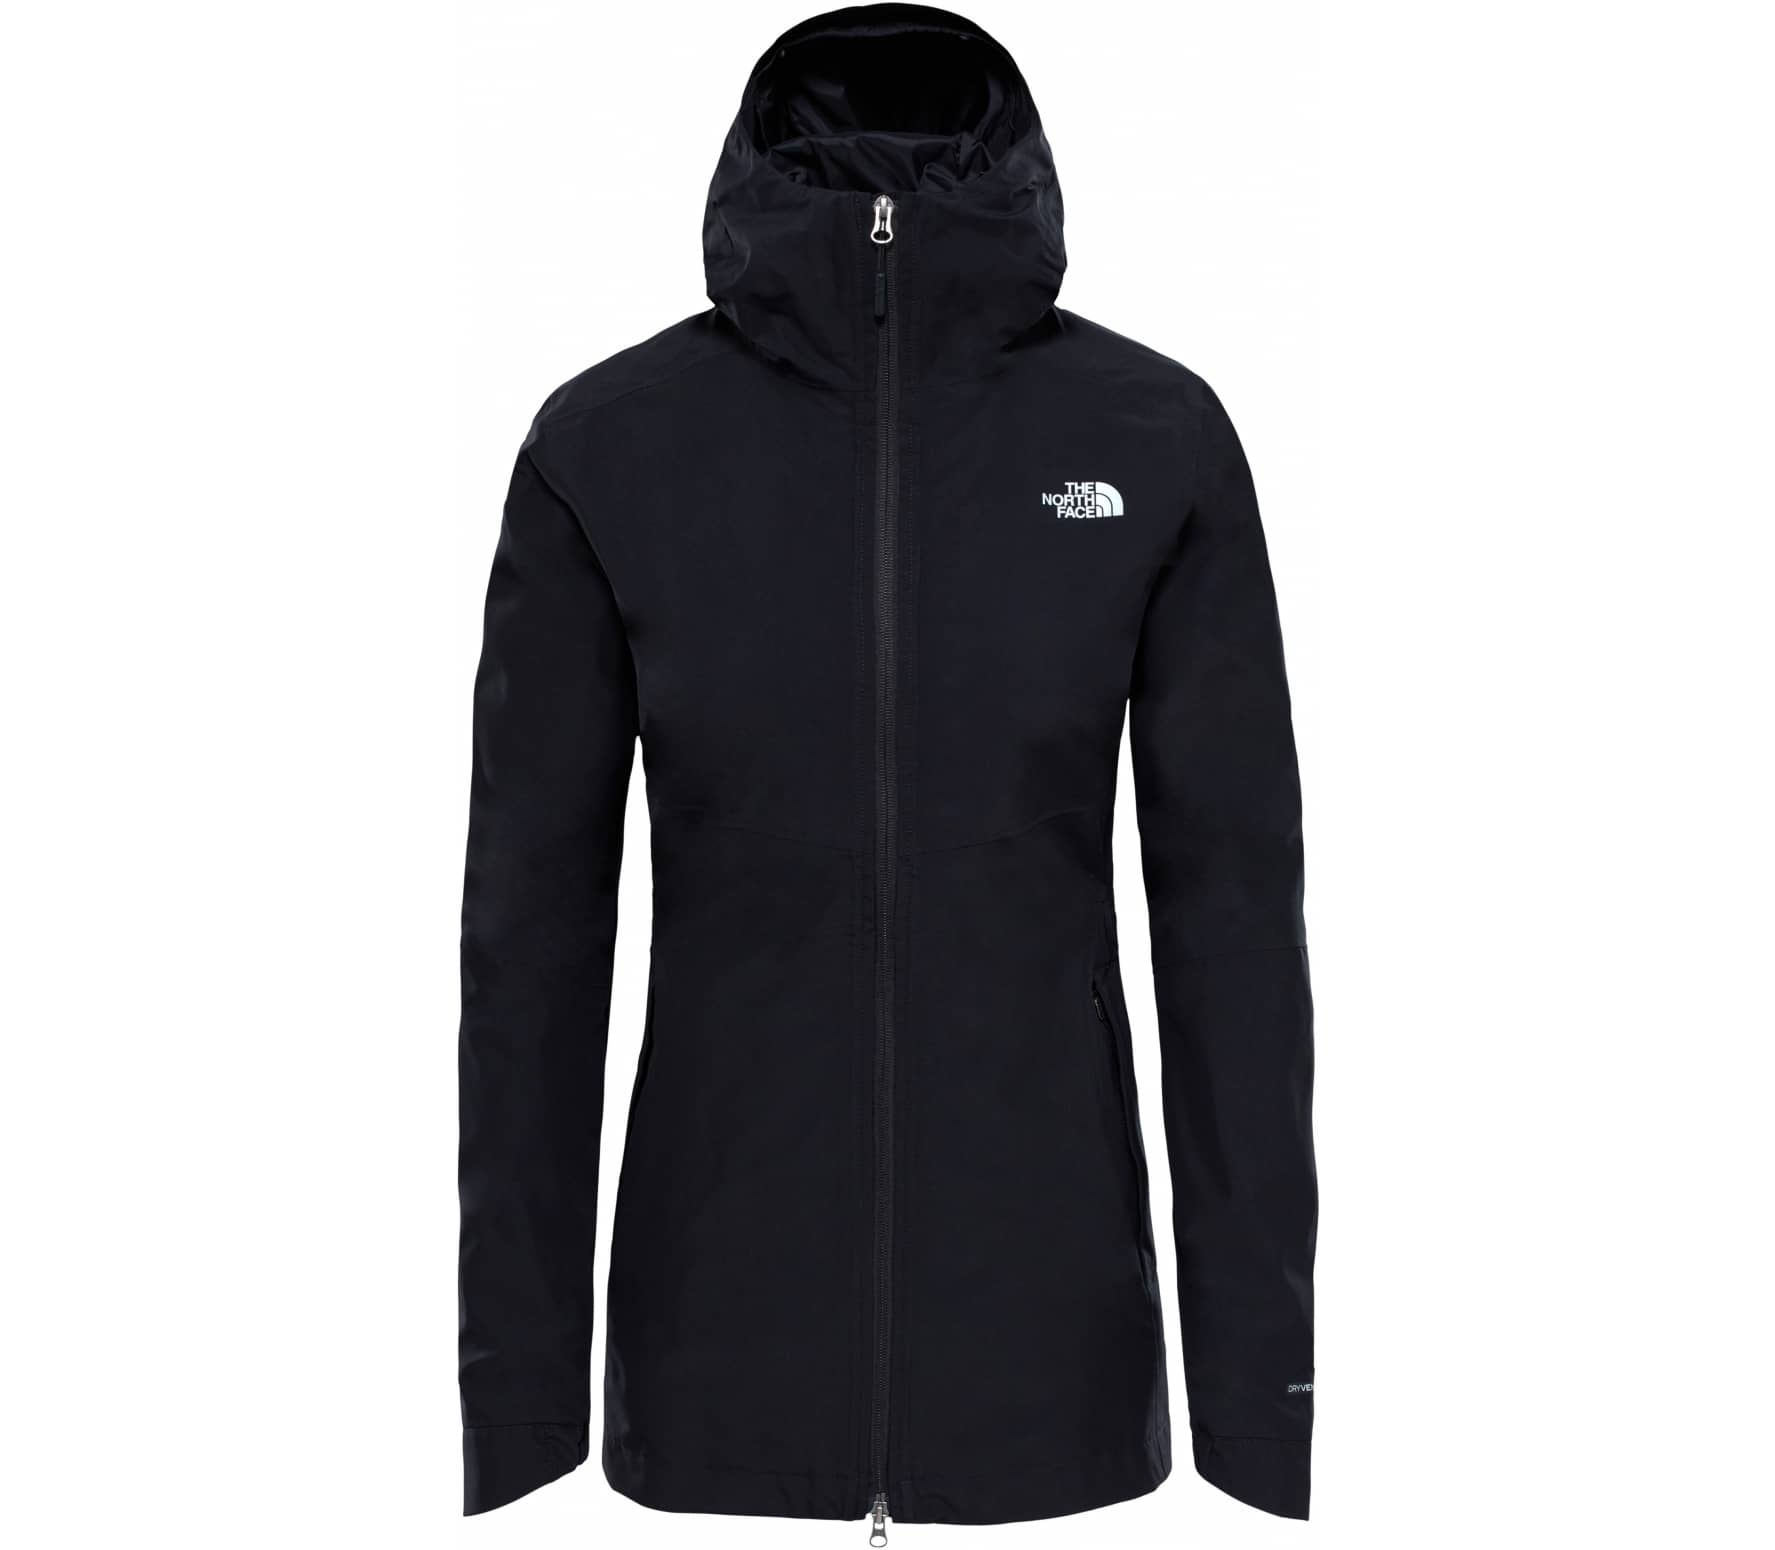 the north face hikesteller damen regenjacke schwarz im online shop von keller sports kaufen. Black Bedroom Furniture Sets. Home Design Ideas